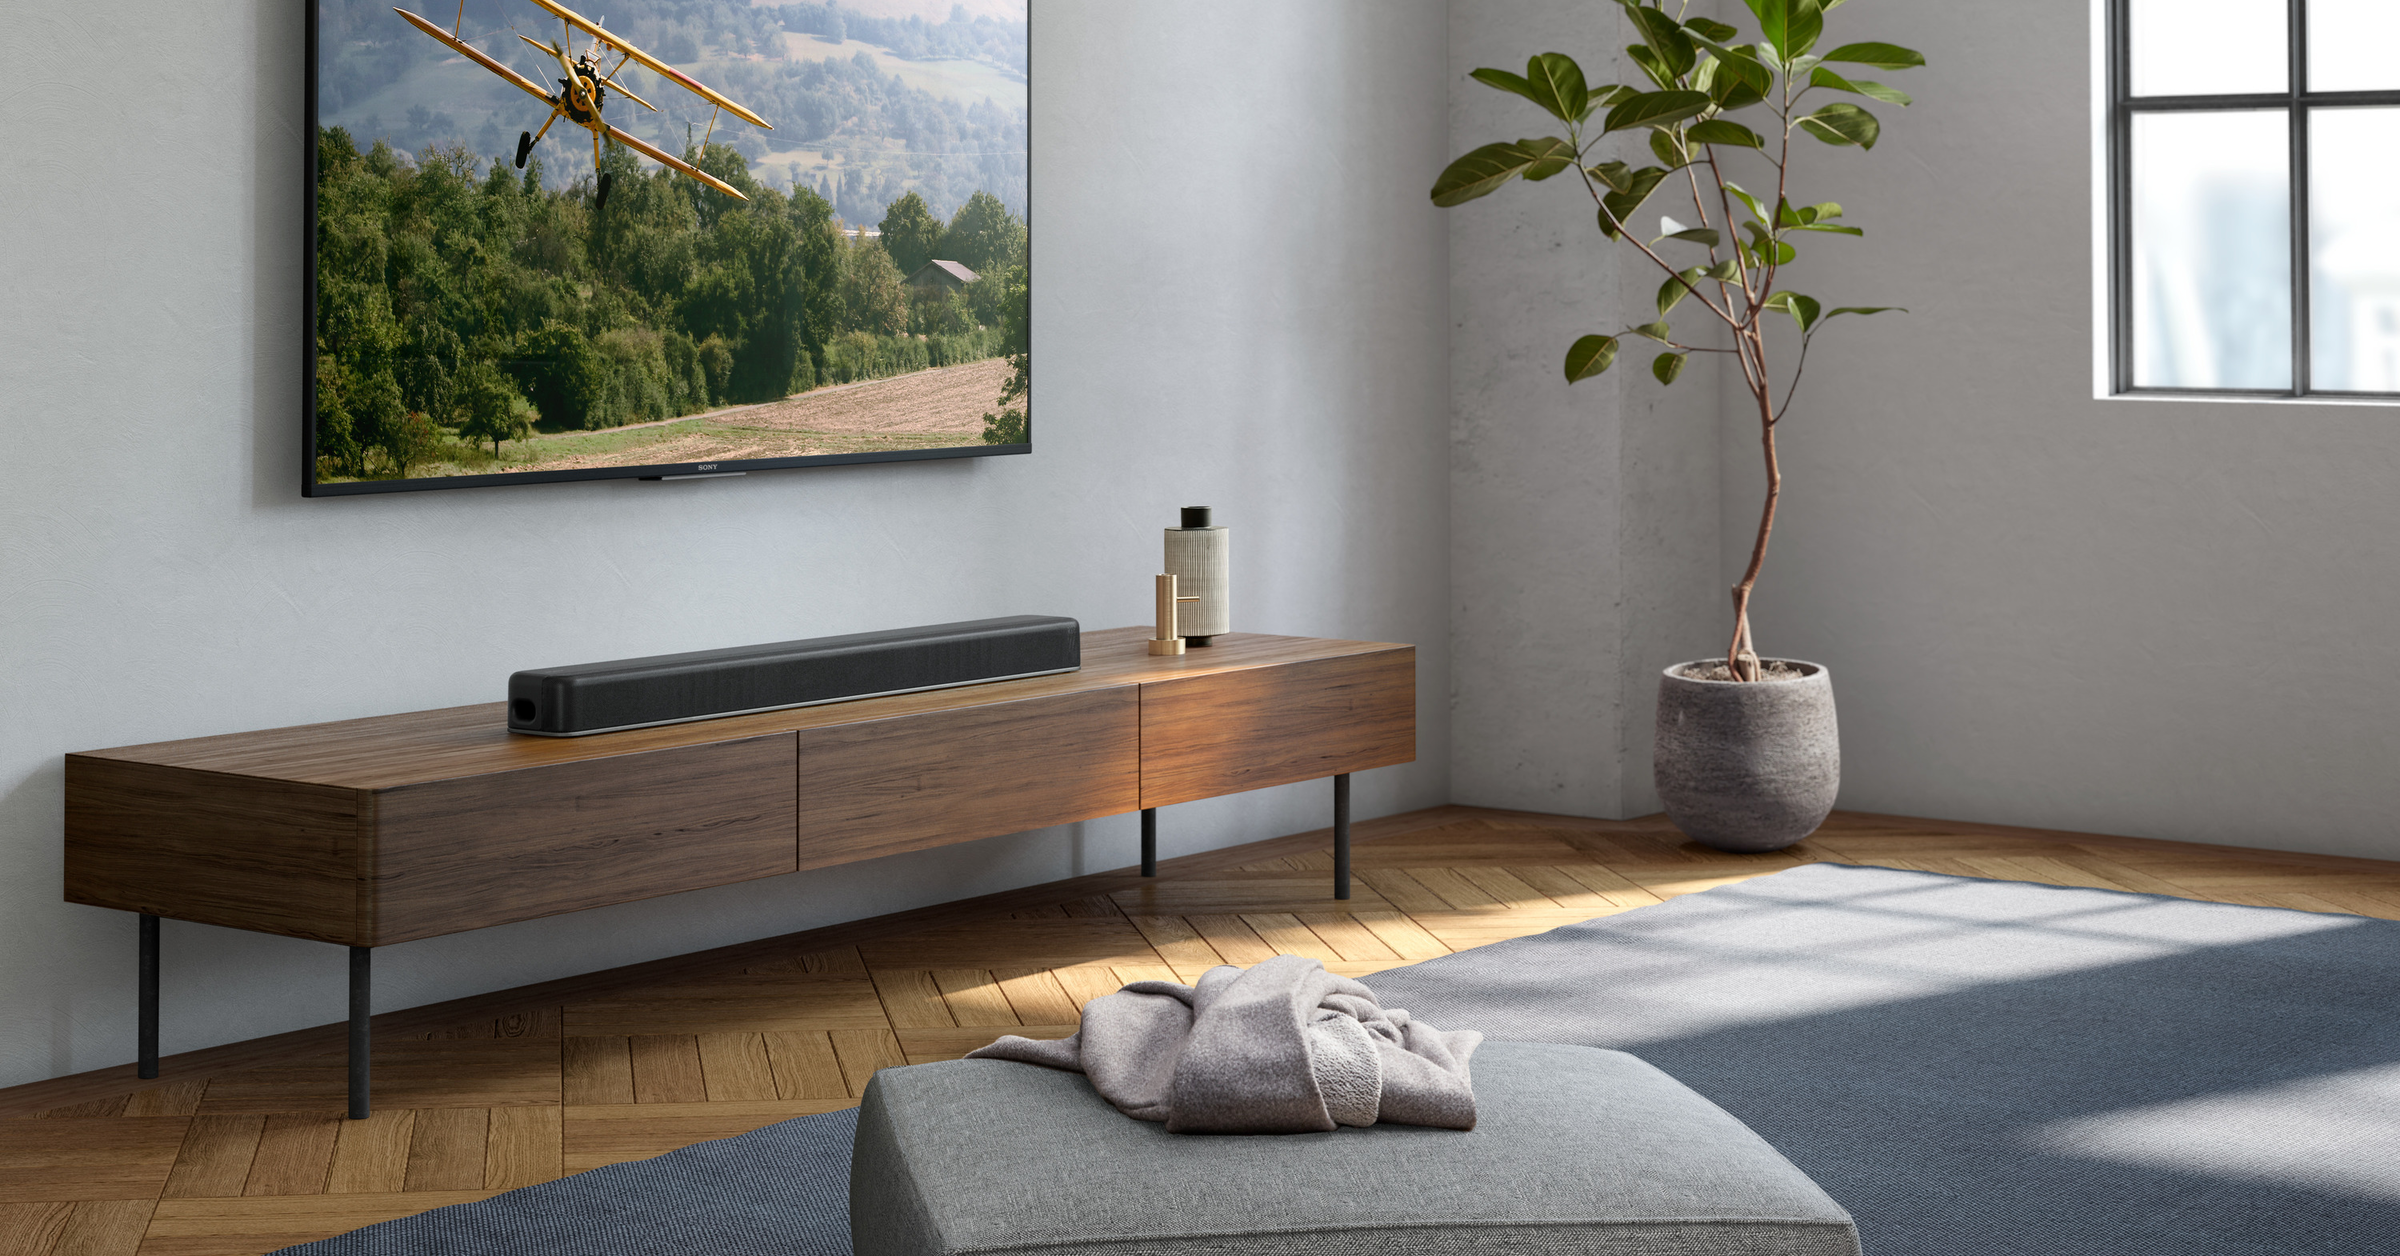 Sound, Ultra HD Blu-ray, Soundbar, Home Theater Systems, Dolby Atmos, Sony X8500, , Sony Corporation, Surround sound, Loudspeaker, ht x8500 dolby atmos single soundbar, Furniture, Room, Interior design, Property, Floor, Living room, Wall, Table, Wood, Tree